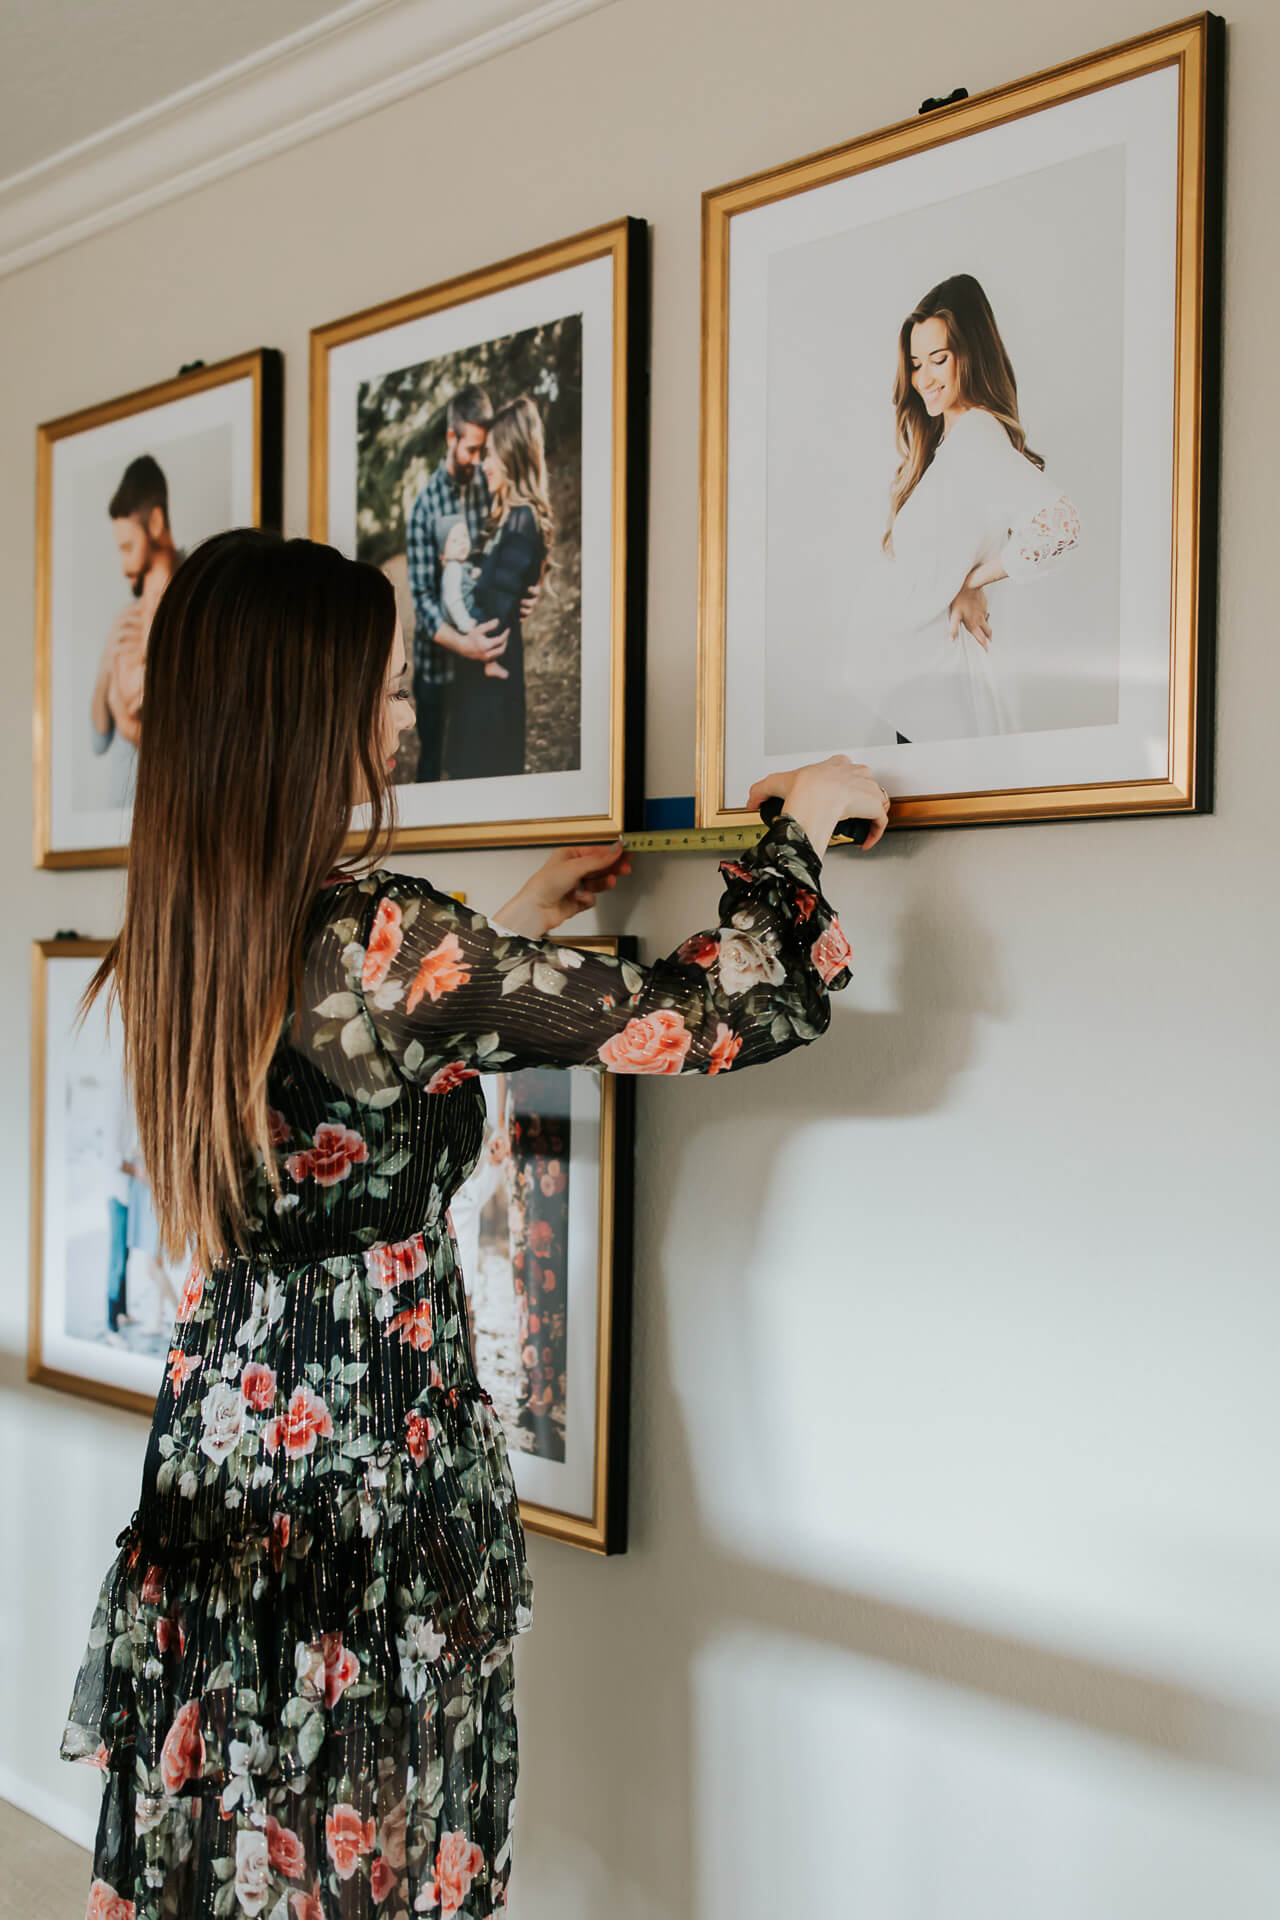 adding the finishing touches to our gallery wall